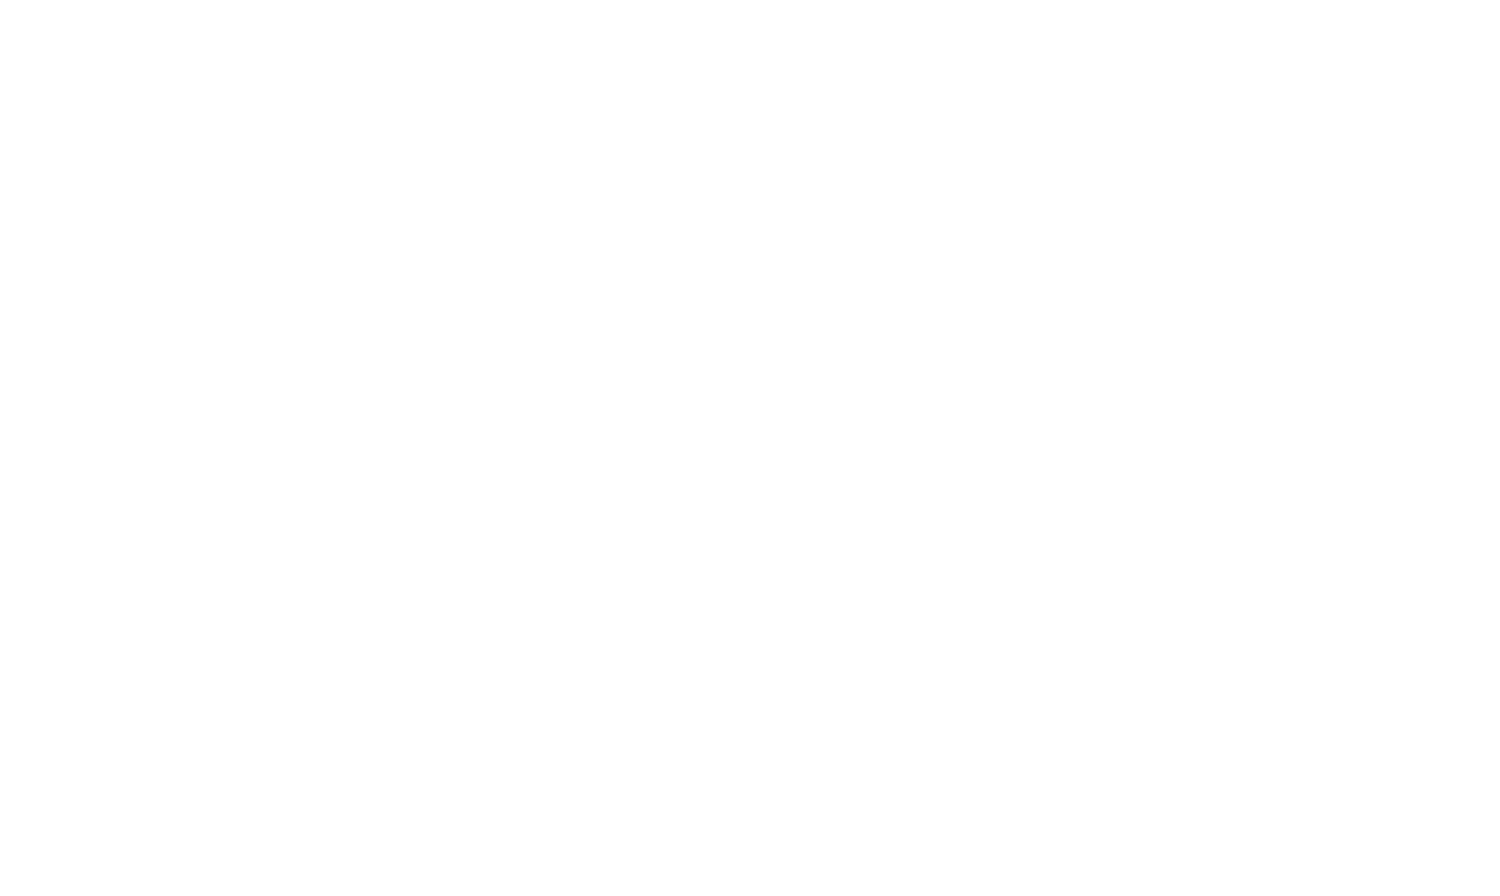 bomknights - like wedding photography but better